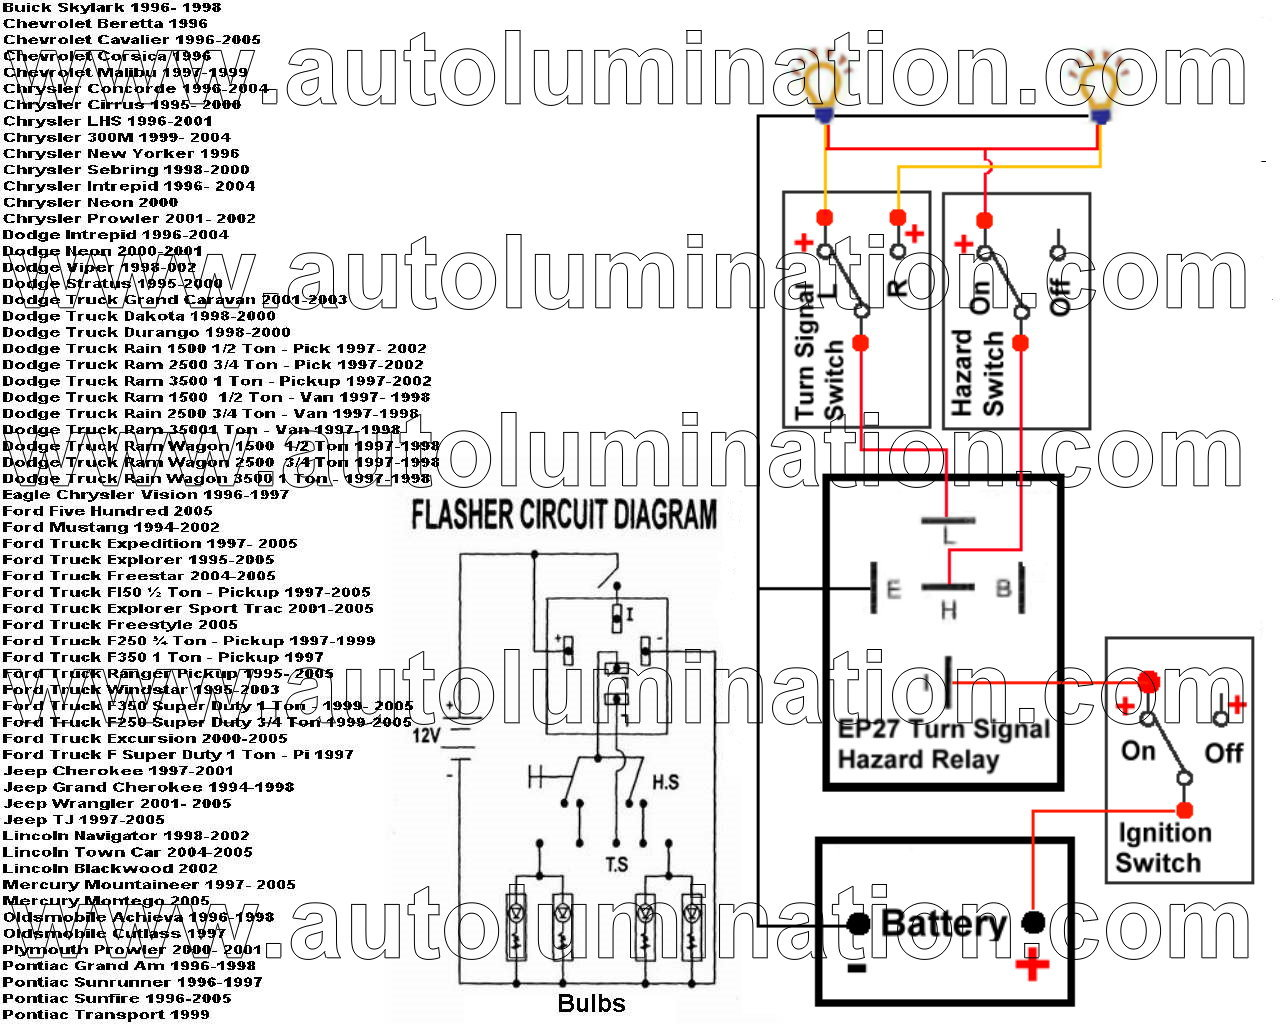 5 pin flasher relay wiring diagram 04 ford expedition radio ep27 27 images